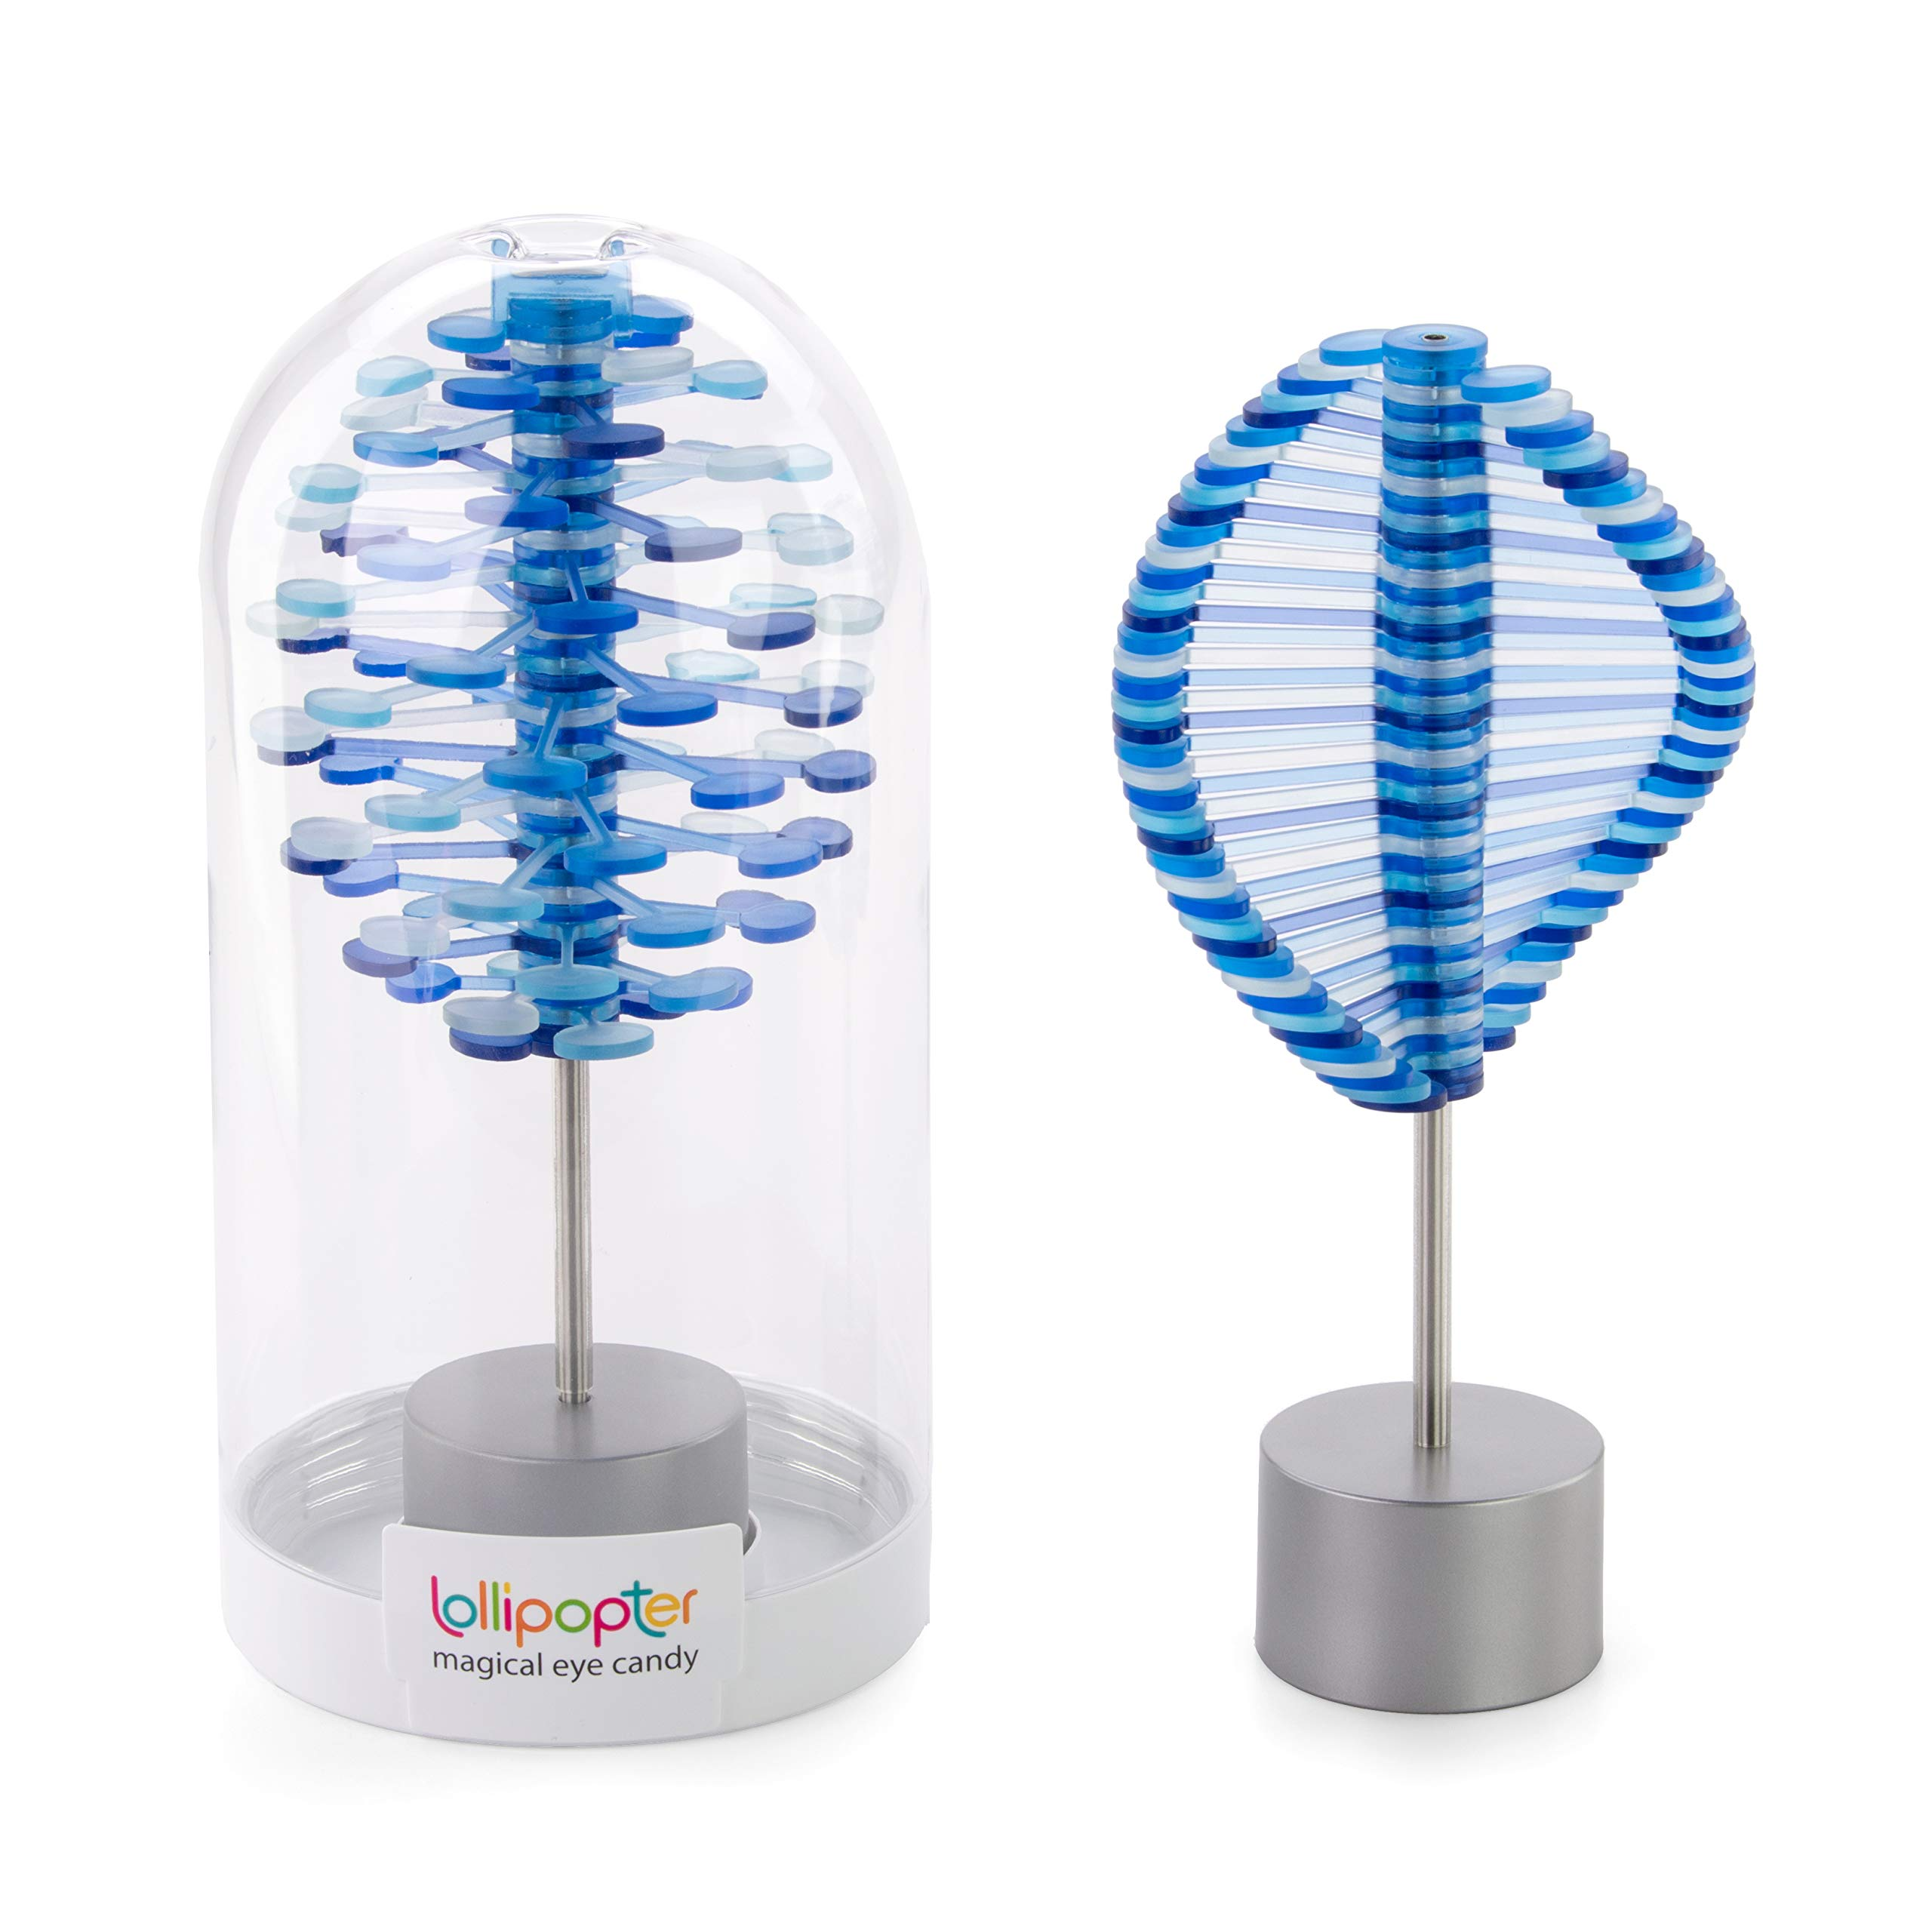 PLAYABLE ART Lollipopter - Huckleberry Spin Translucent (Domed Tube Packaging) by PLAYABLE ART